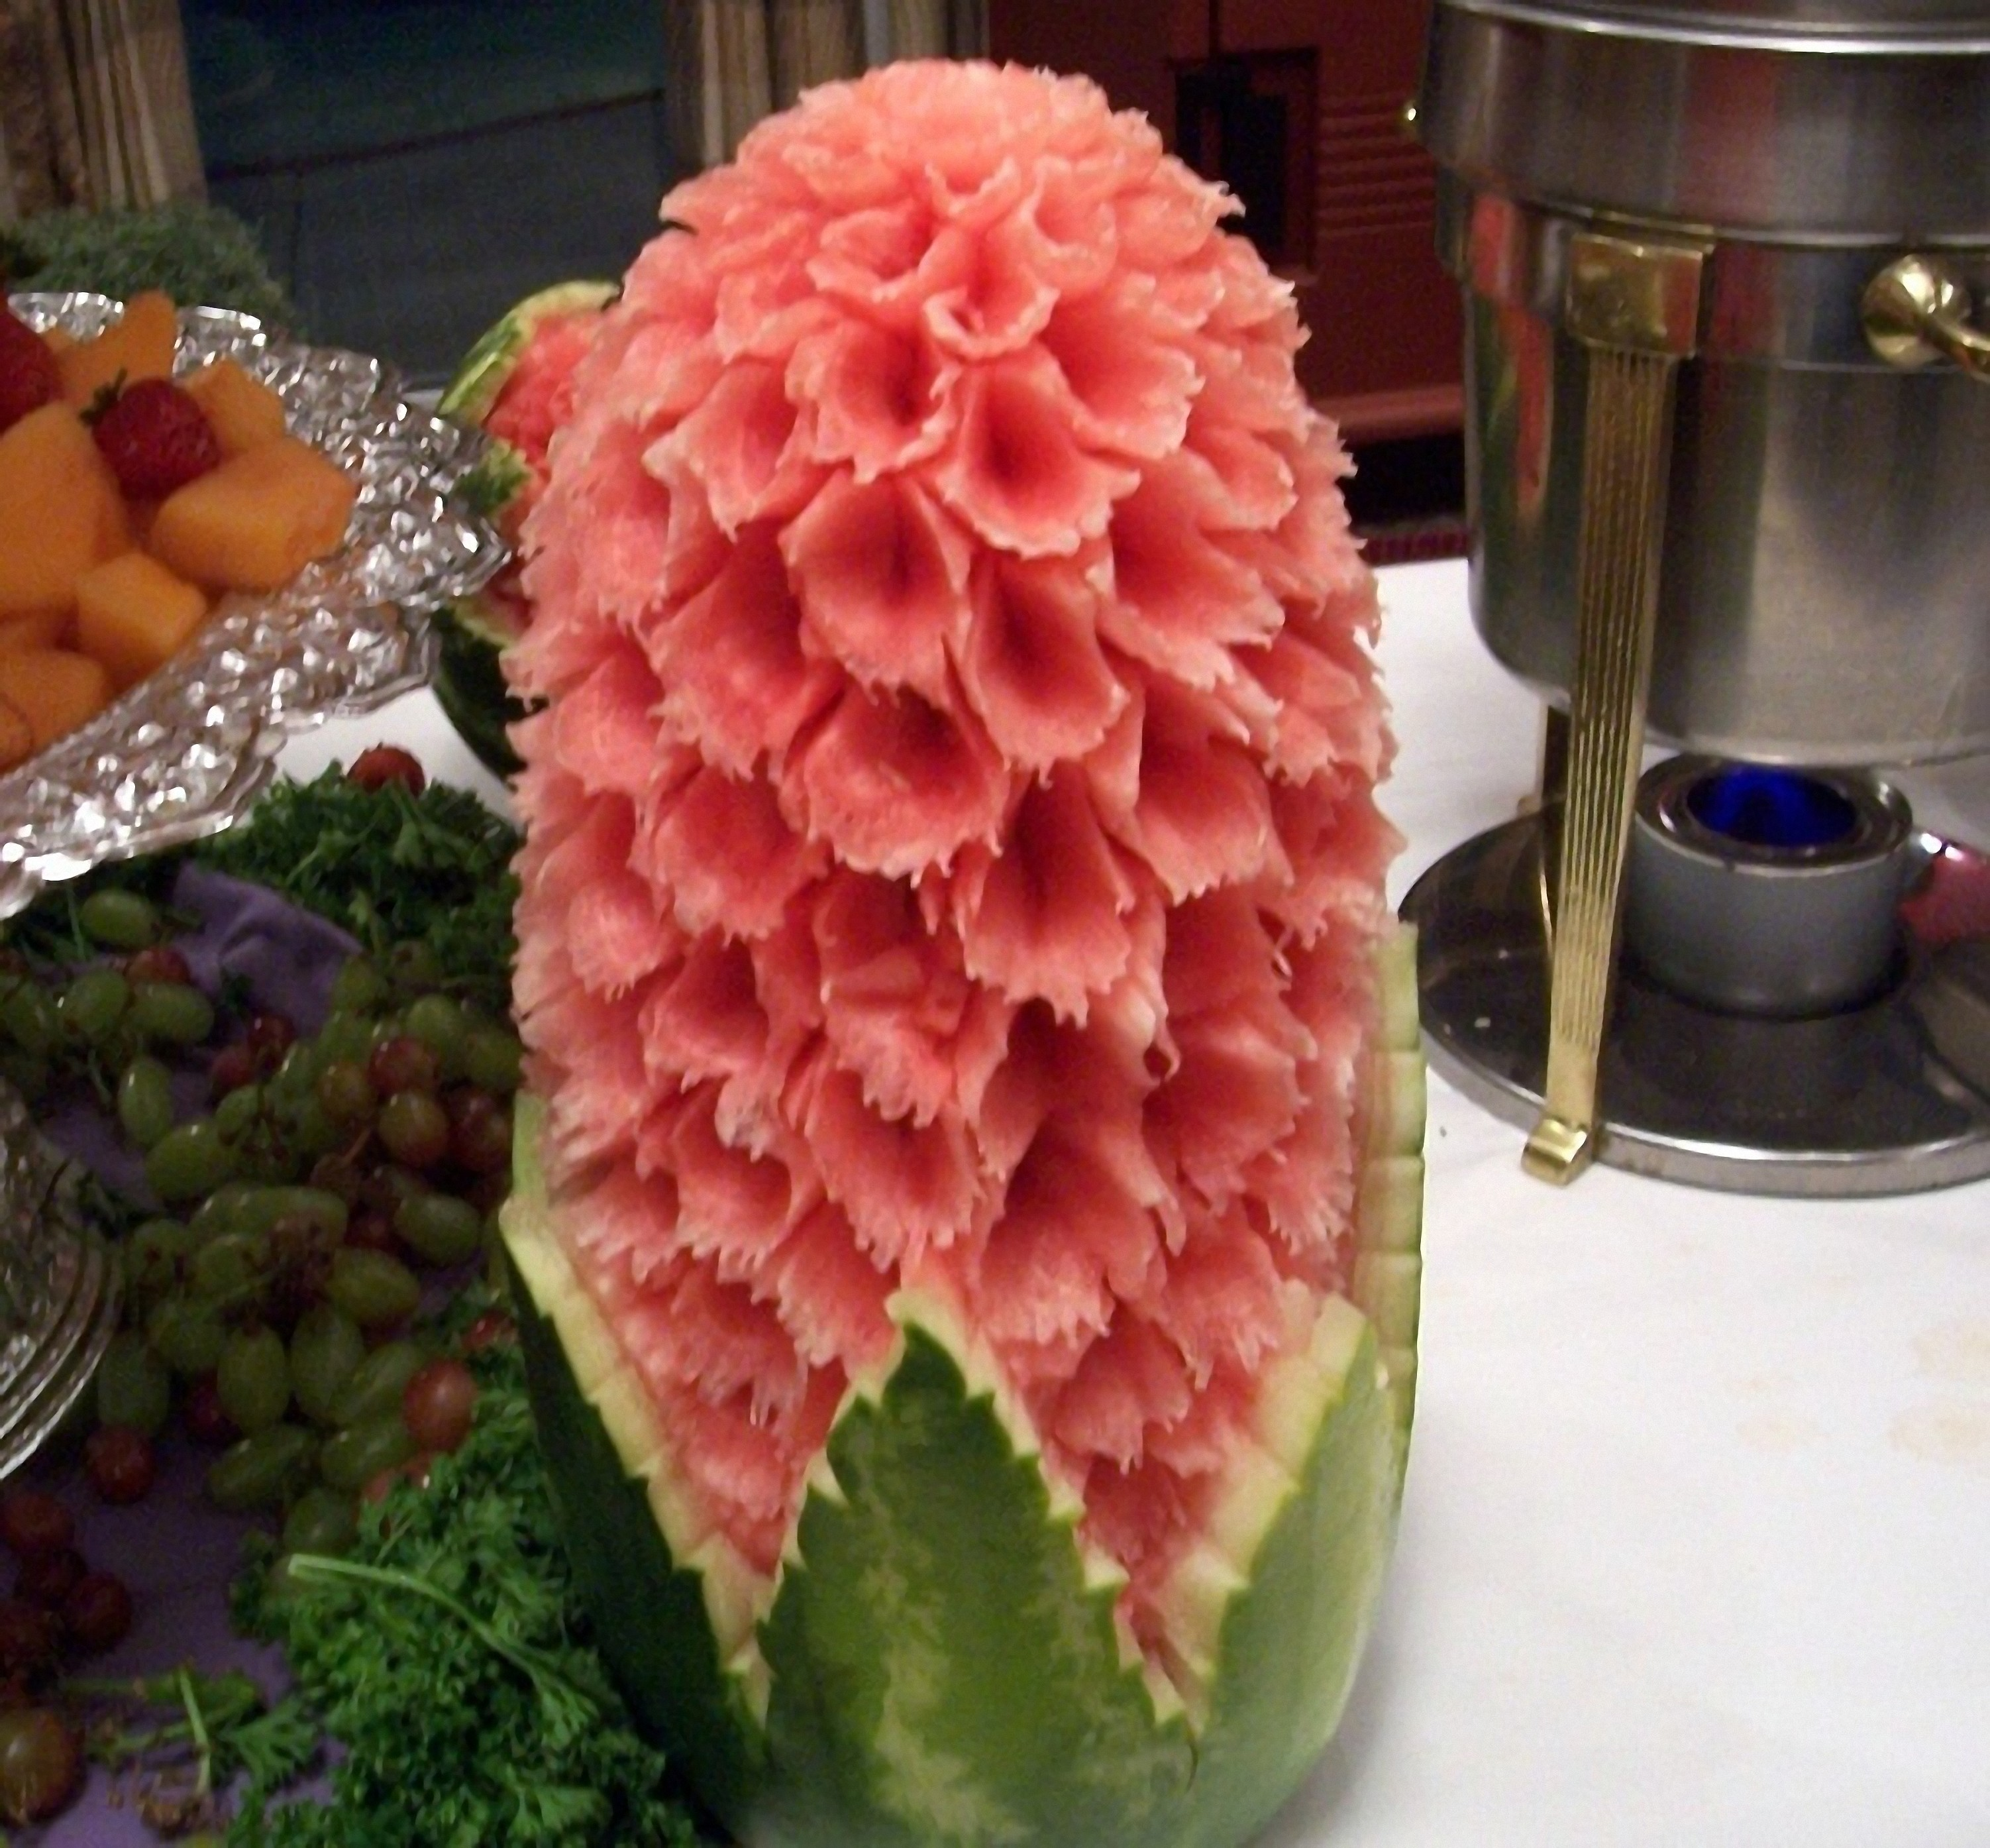 Watermelon-Carving-3(03)